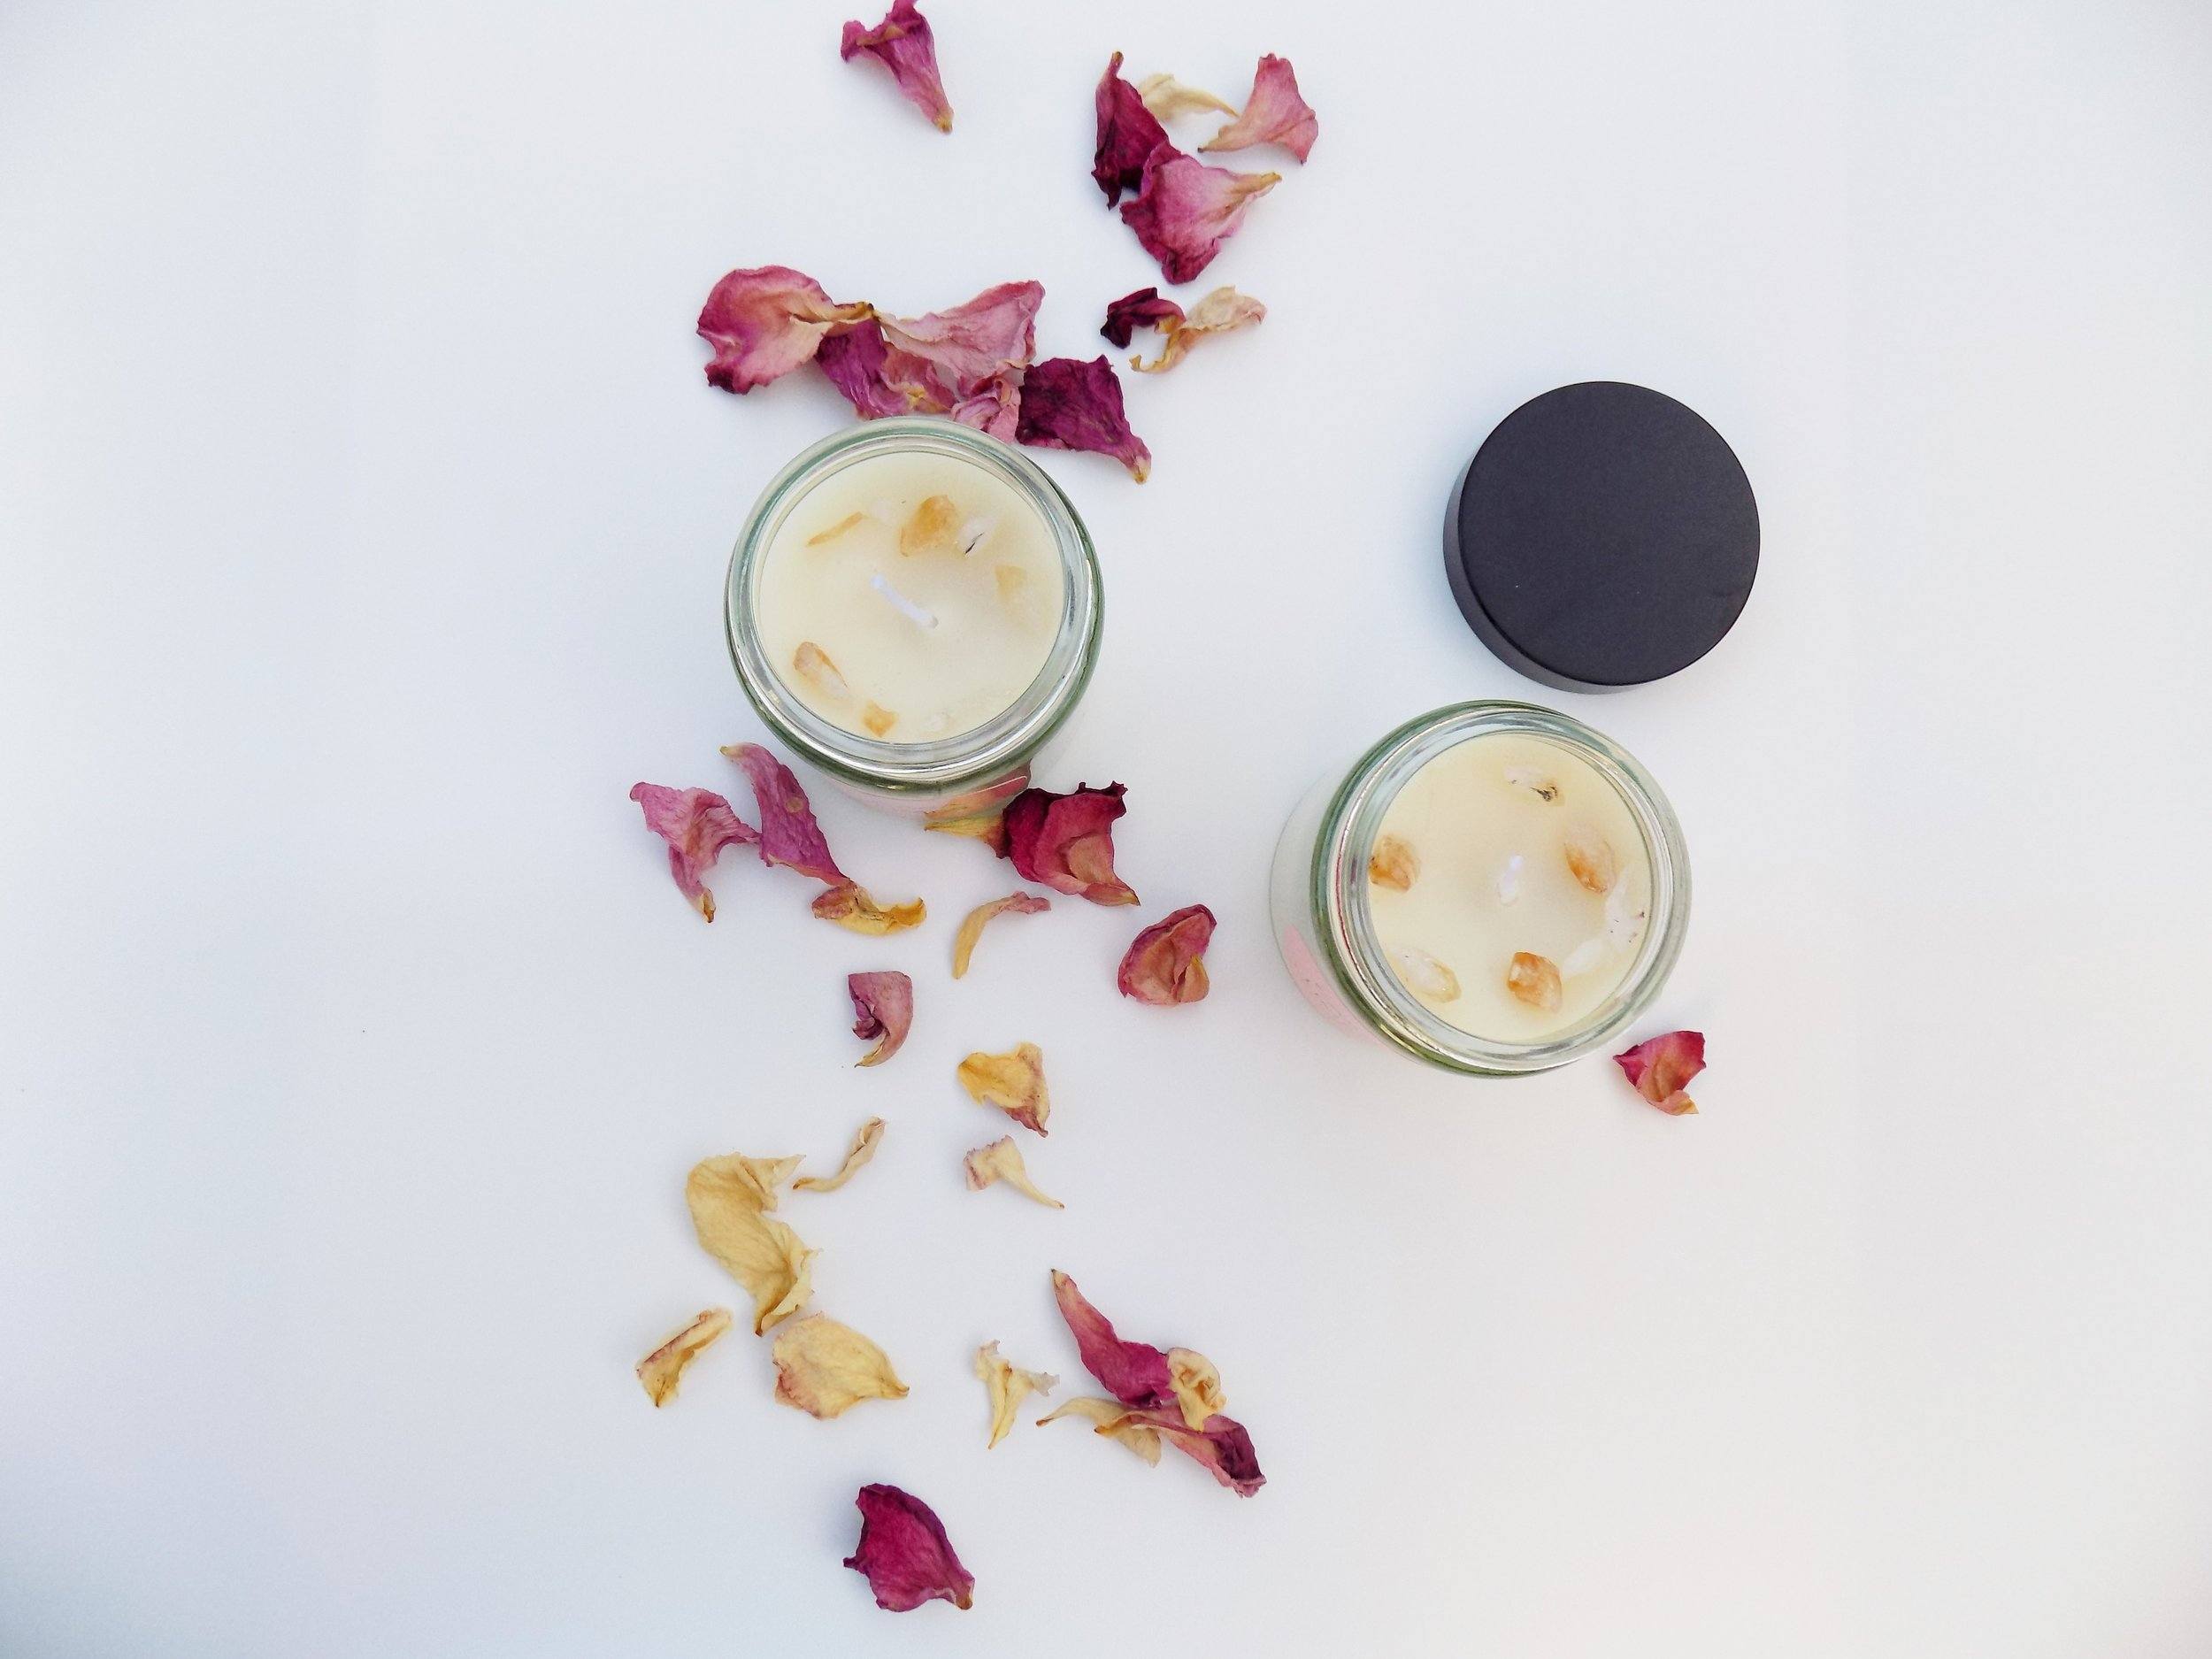 - We use soy wax which is 100% GM free and with no pesticides and herbicides at any stage during its collecting process.